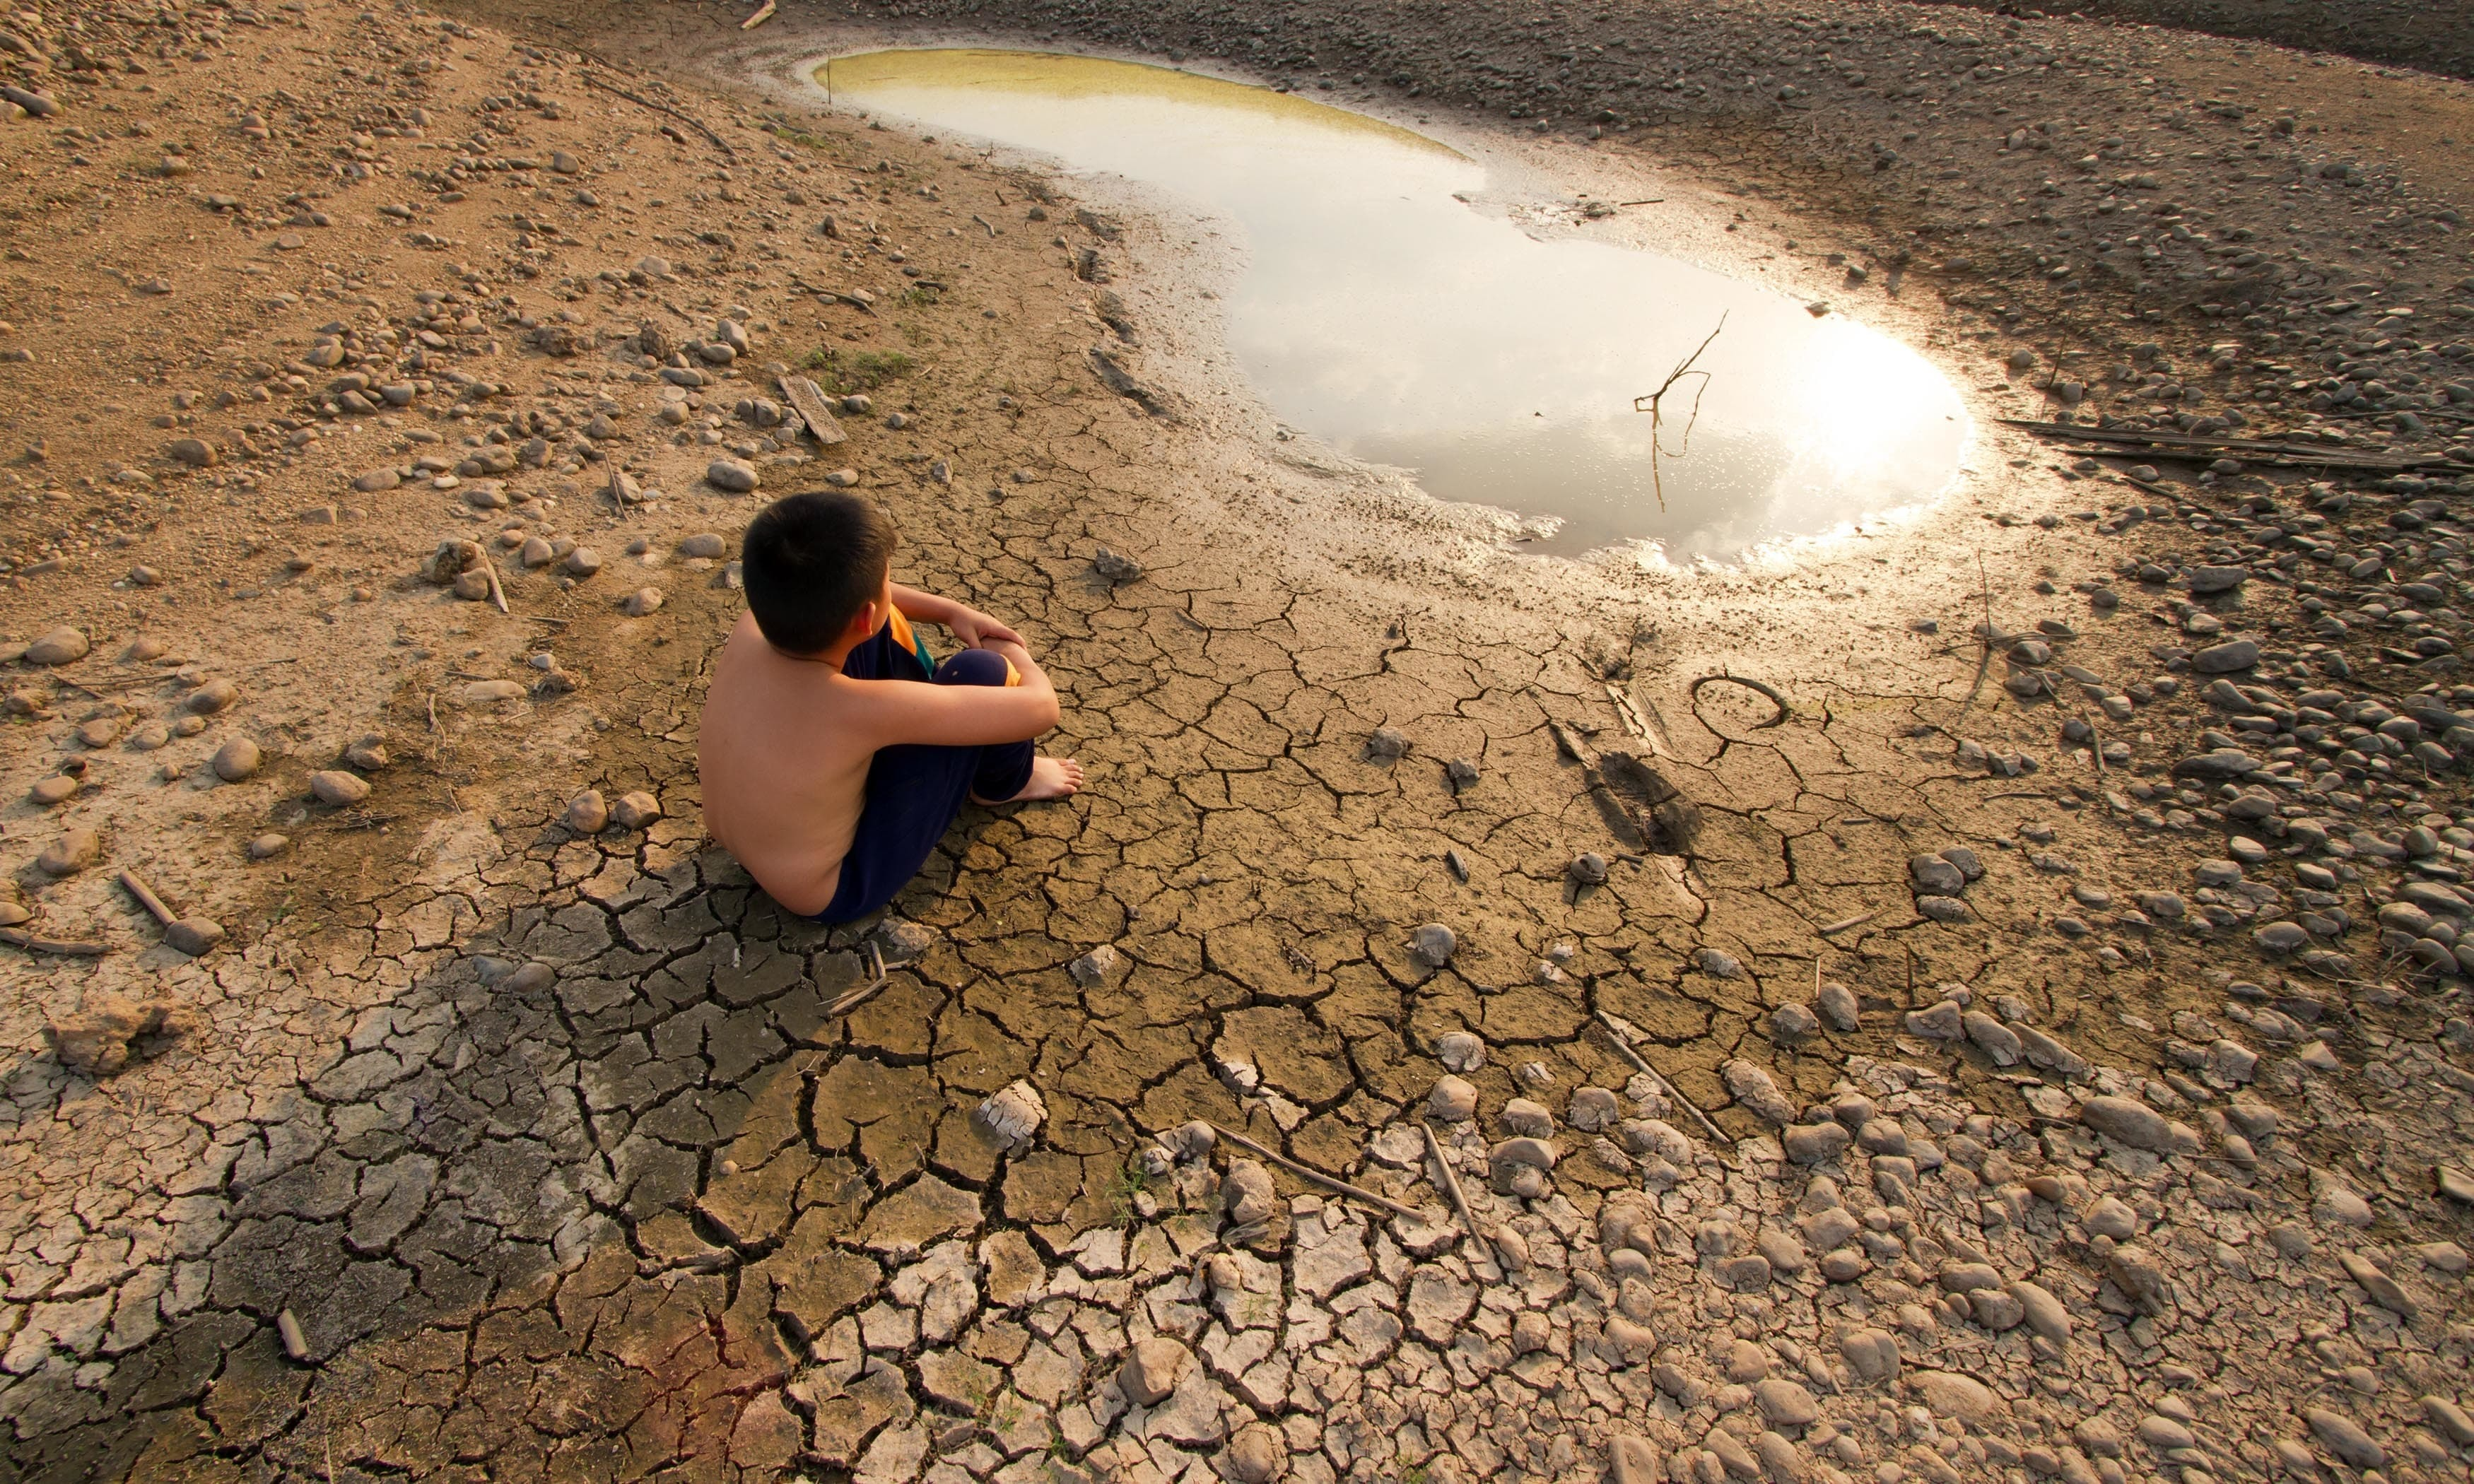 Pakistan 5th most vulnerable country to climate change, reveals Germanwatch report